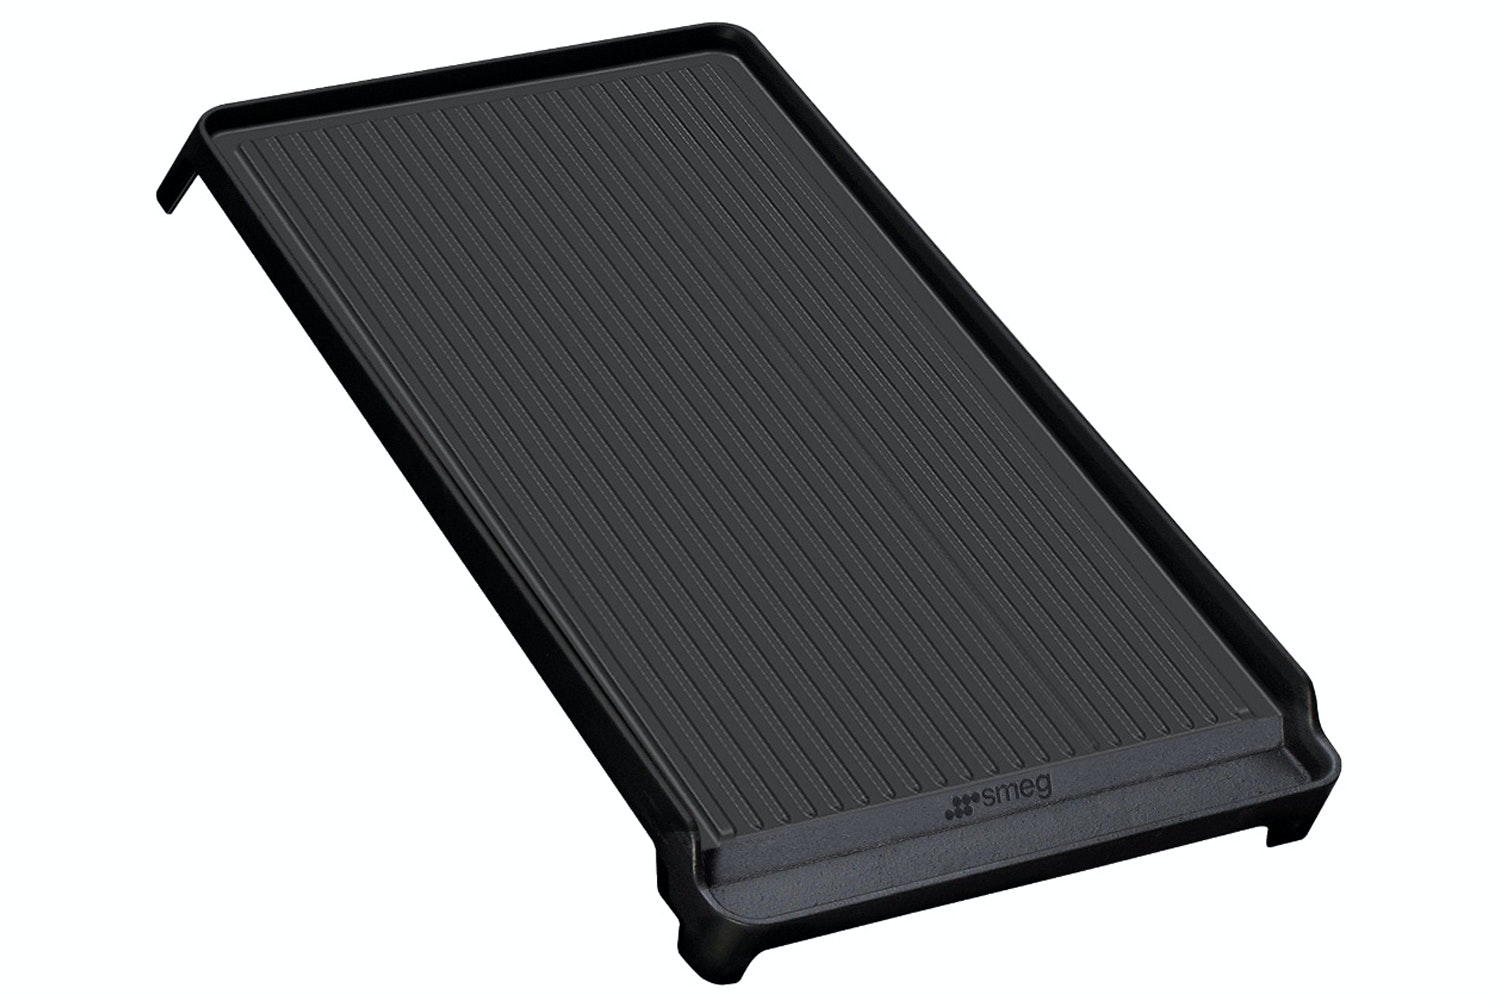 Smeg 110cm Ribbed Cast Iron Griddle | BGTR4110